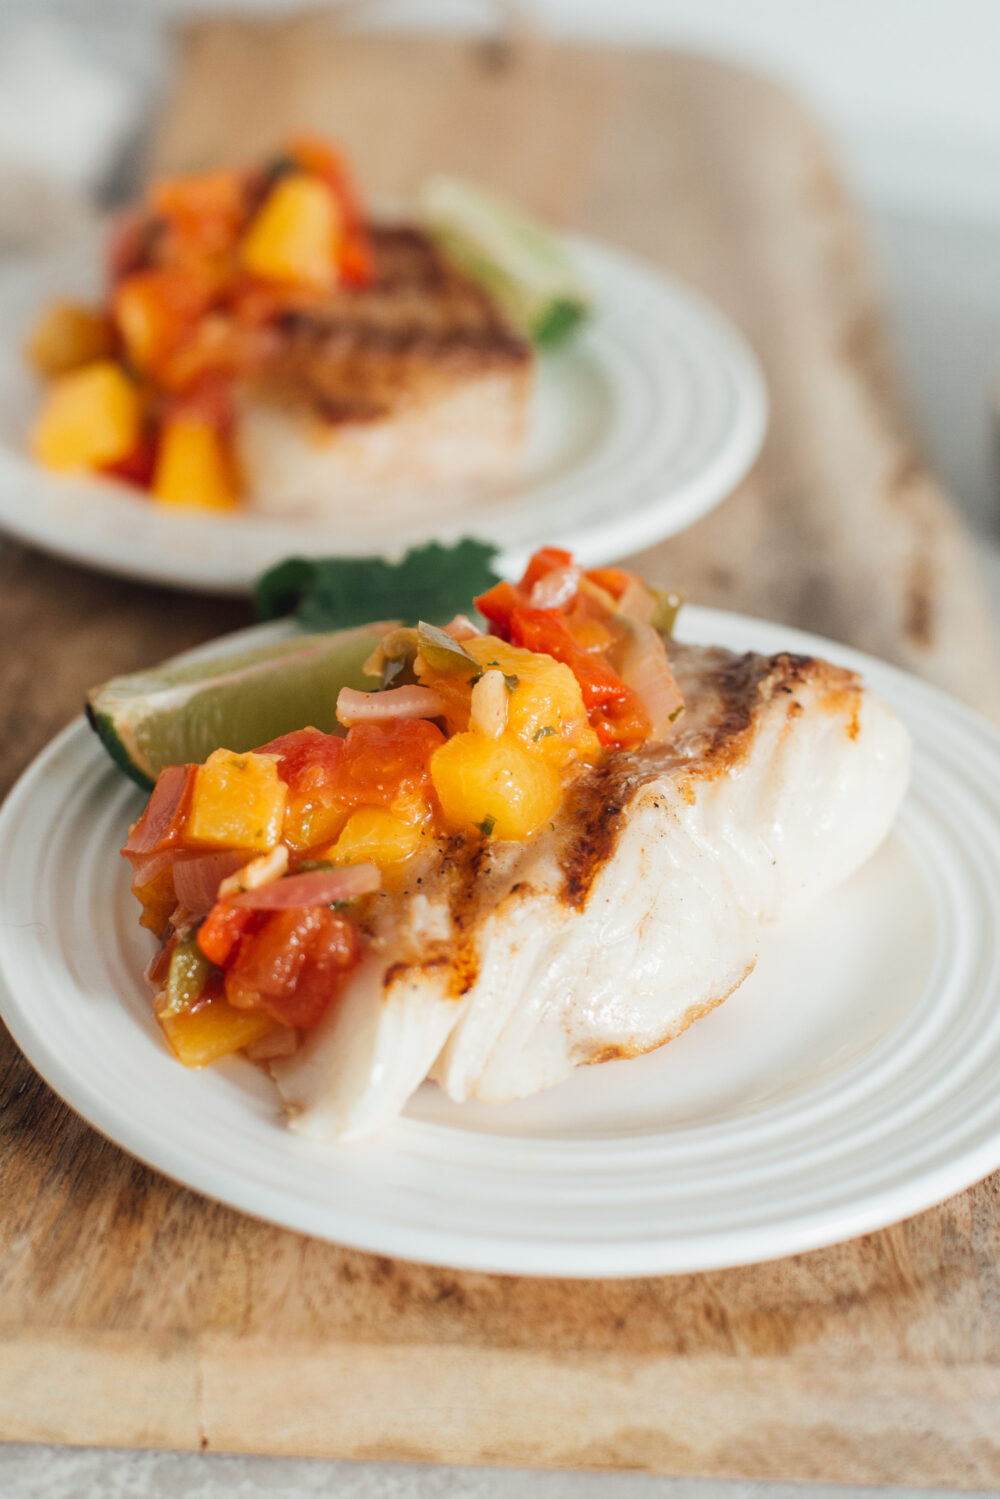 Portrait of two plates of grilled halibut with peach salsa on top.